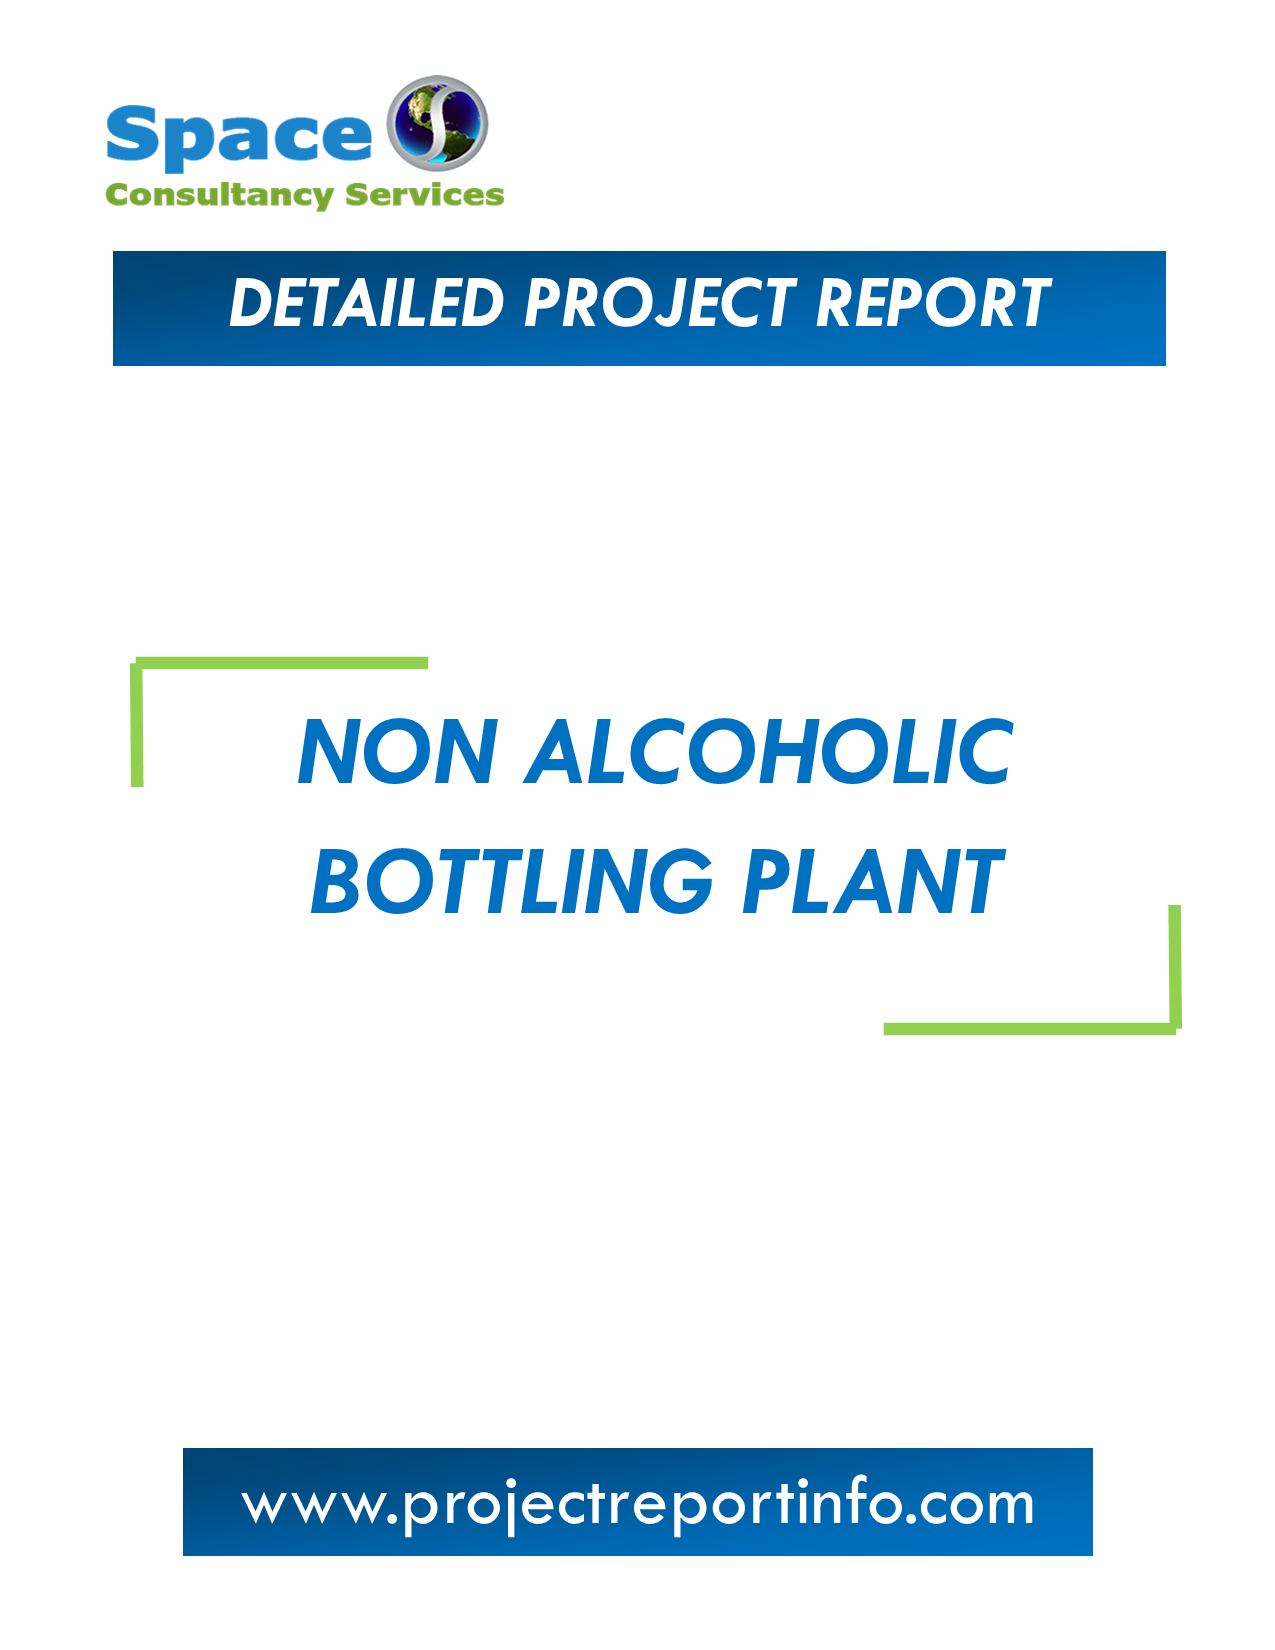 Project Report on Alcoholic Bottling Plant